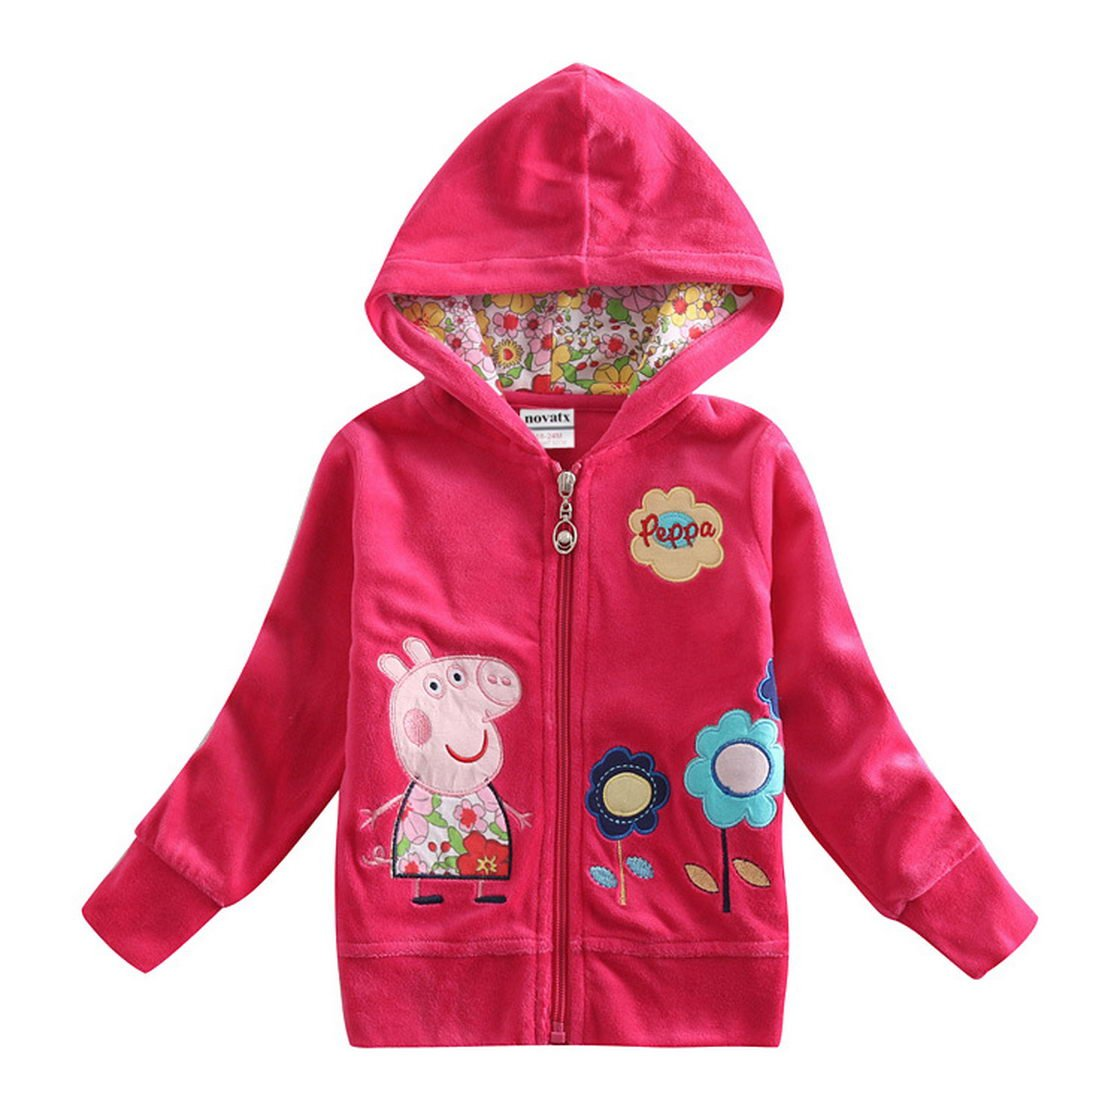 Peppa Pig Little Girls Long Sleeve Cartoon Pullover Hooded Cotton Jacket 1-6Y Tiful